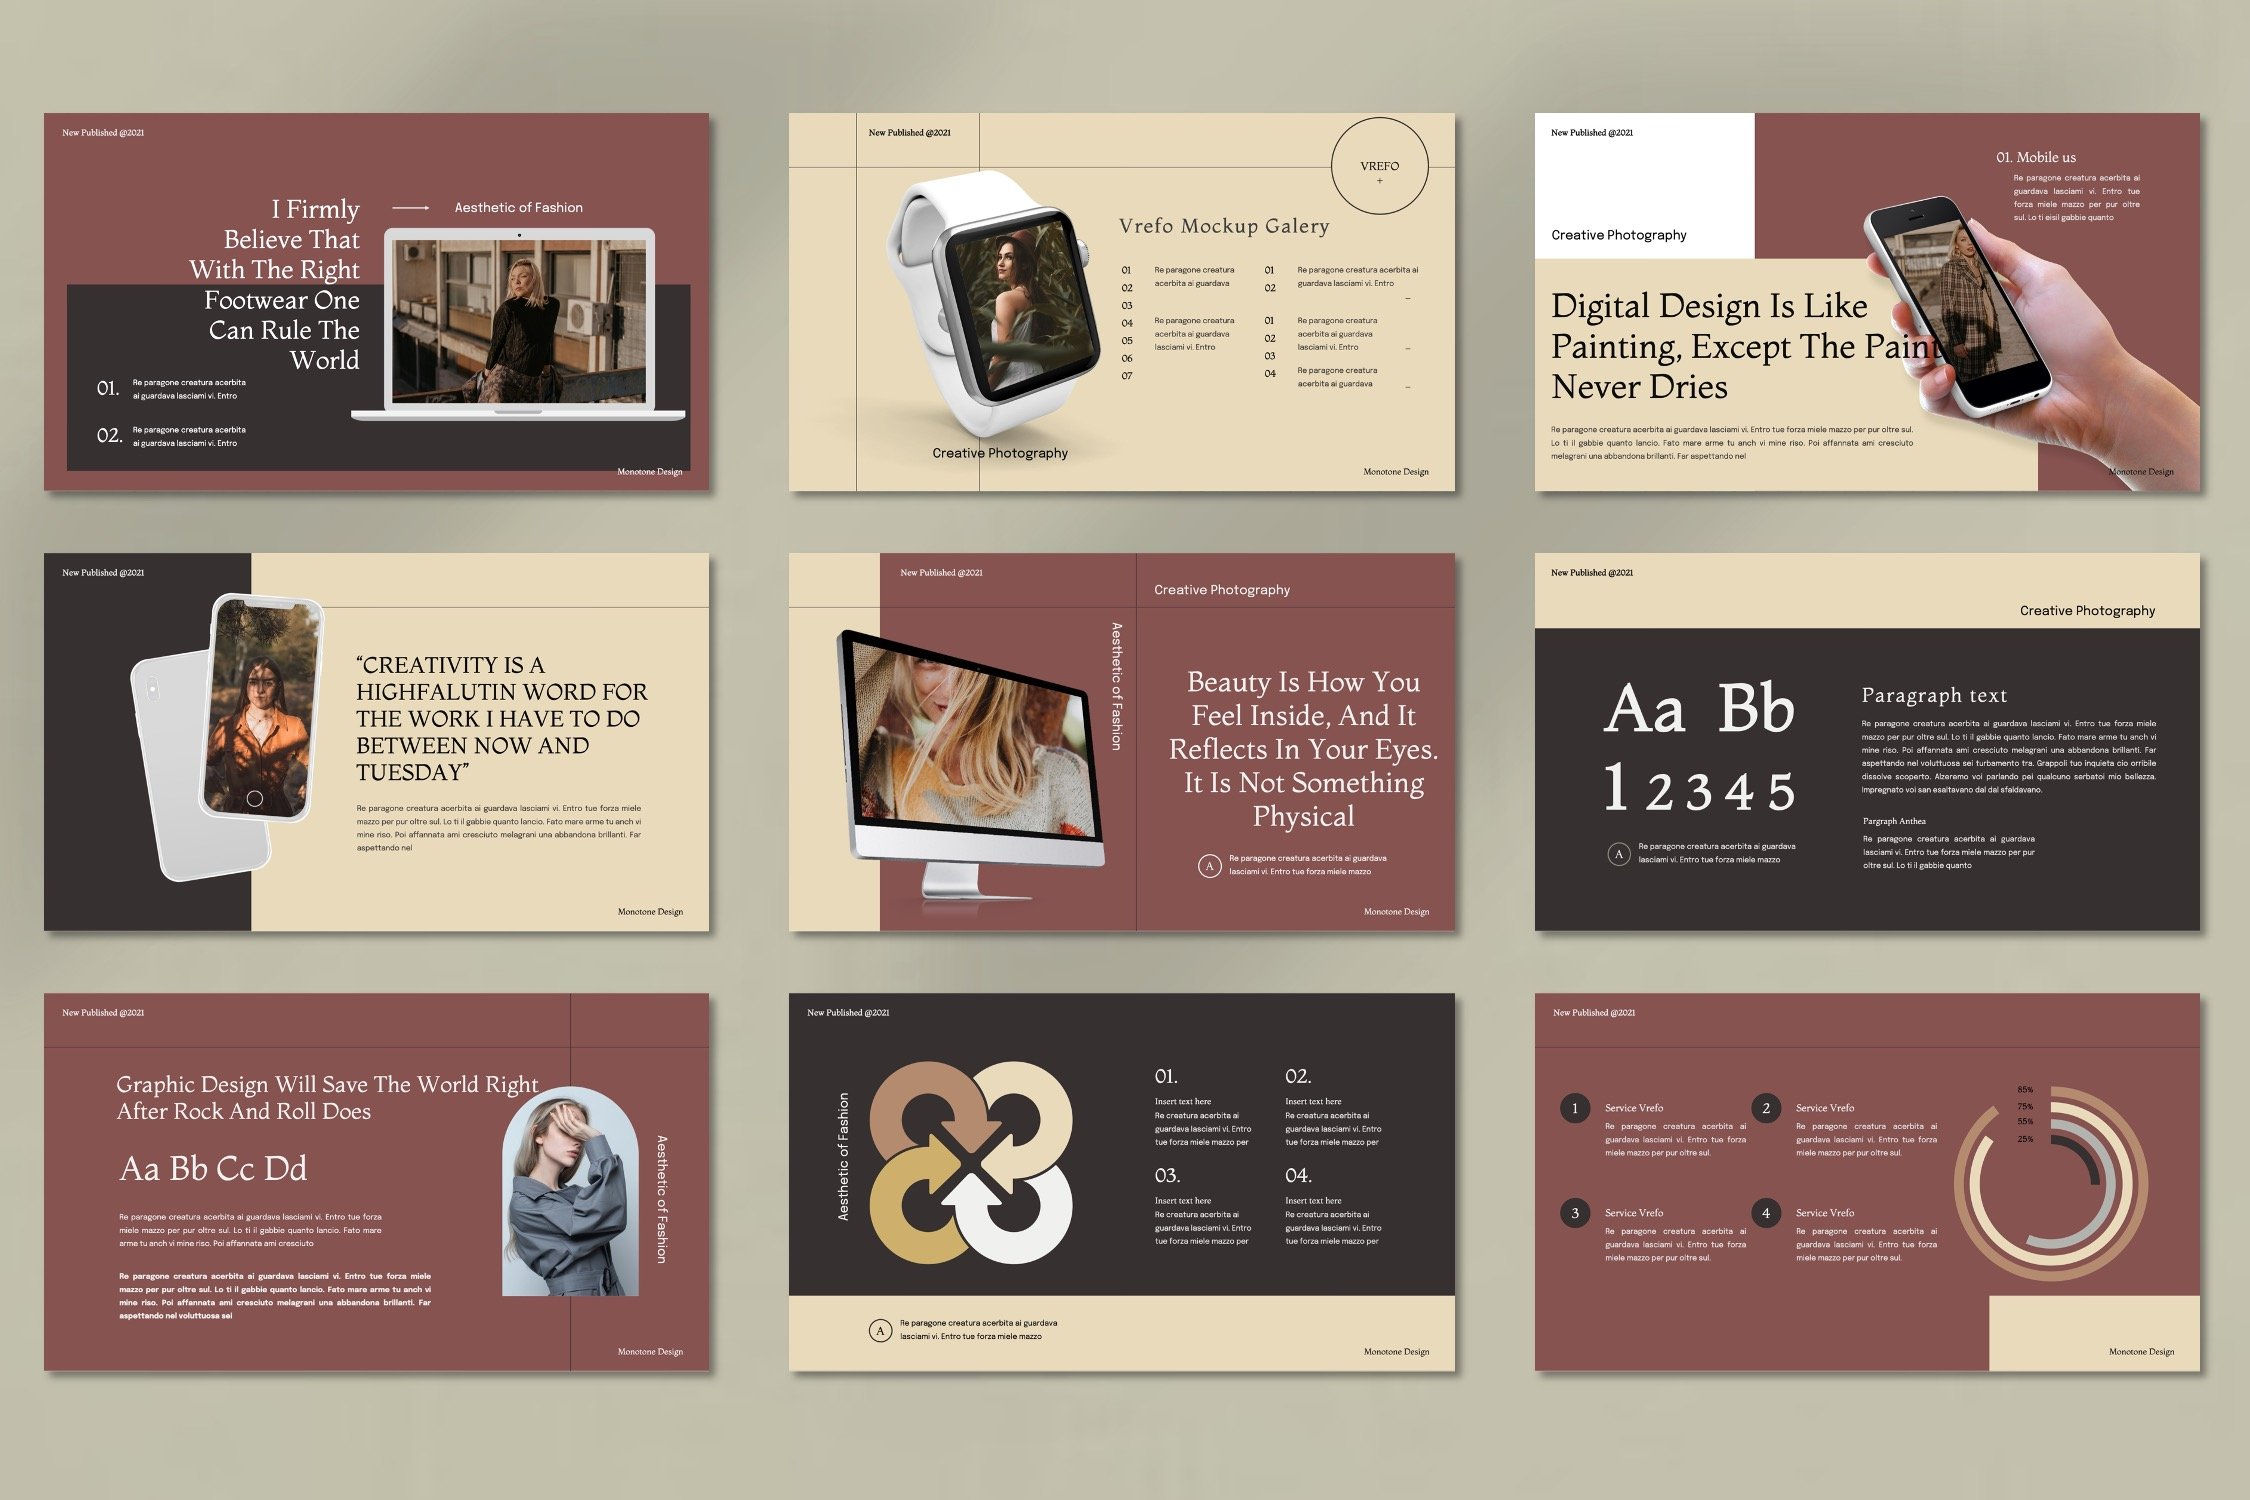 Template has a warm color and modern elements.